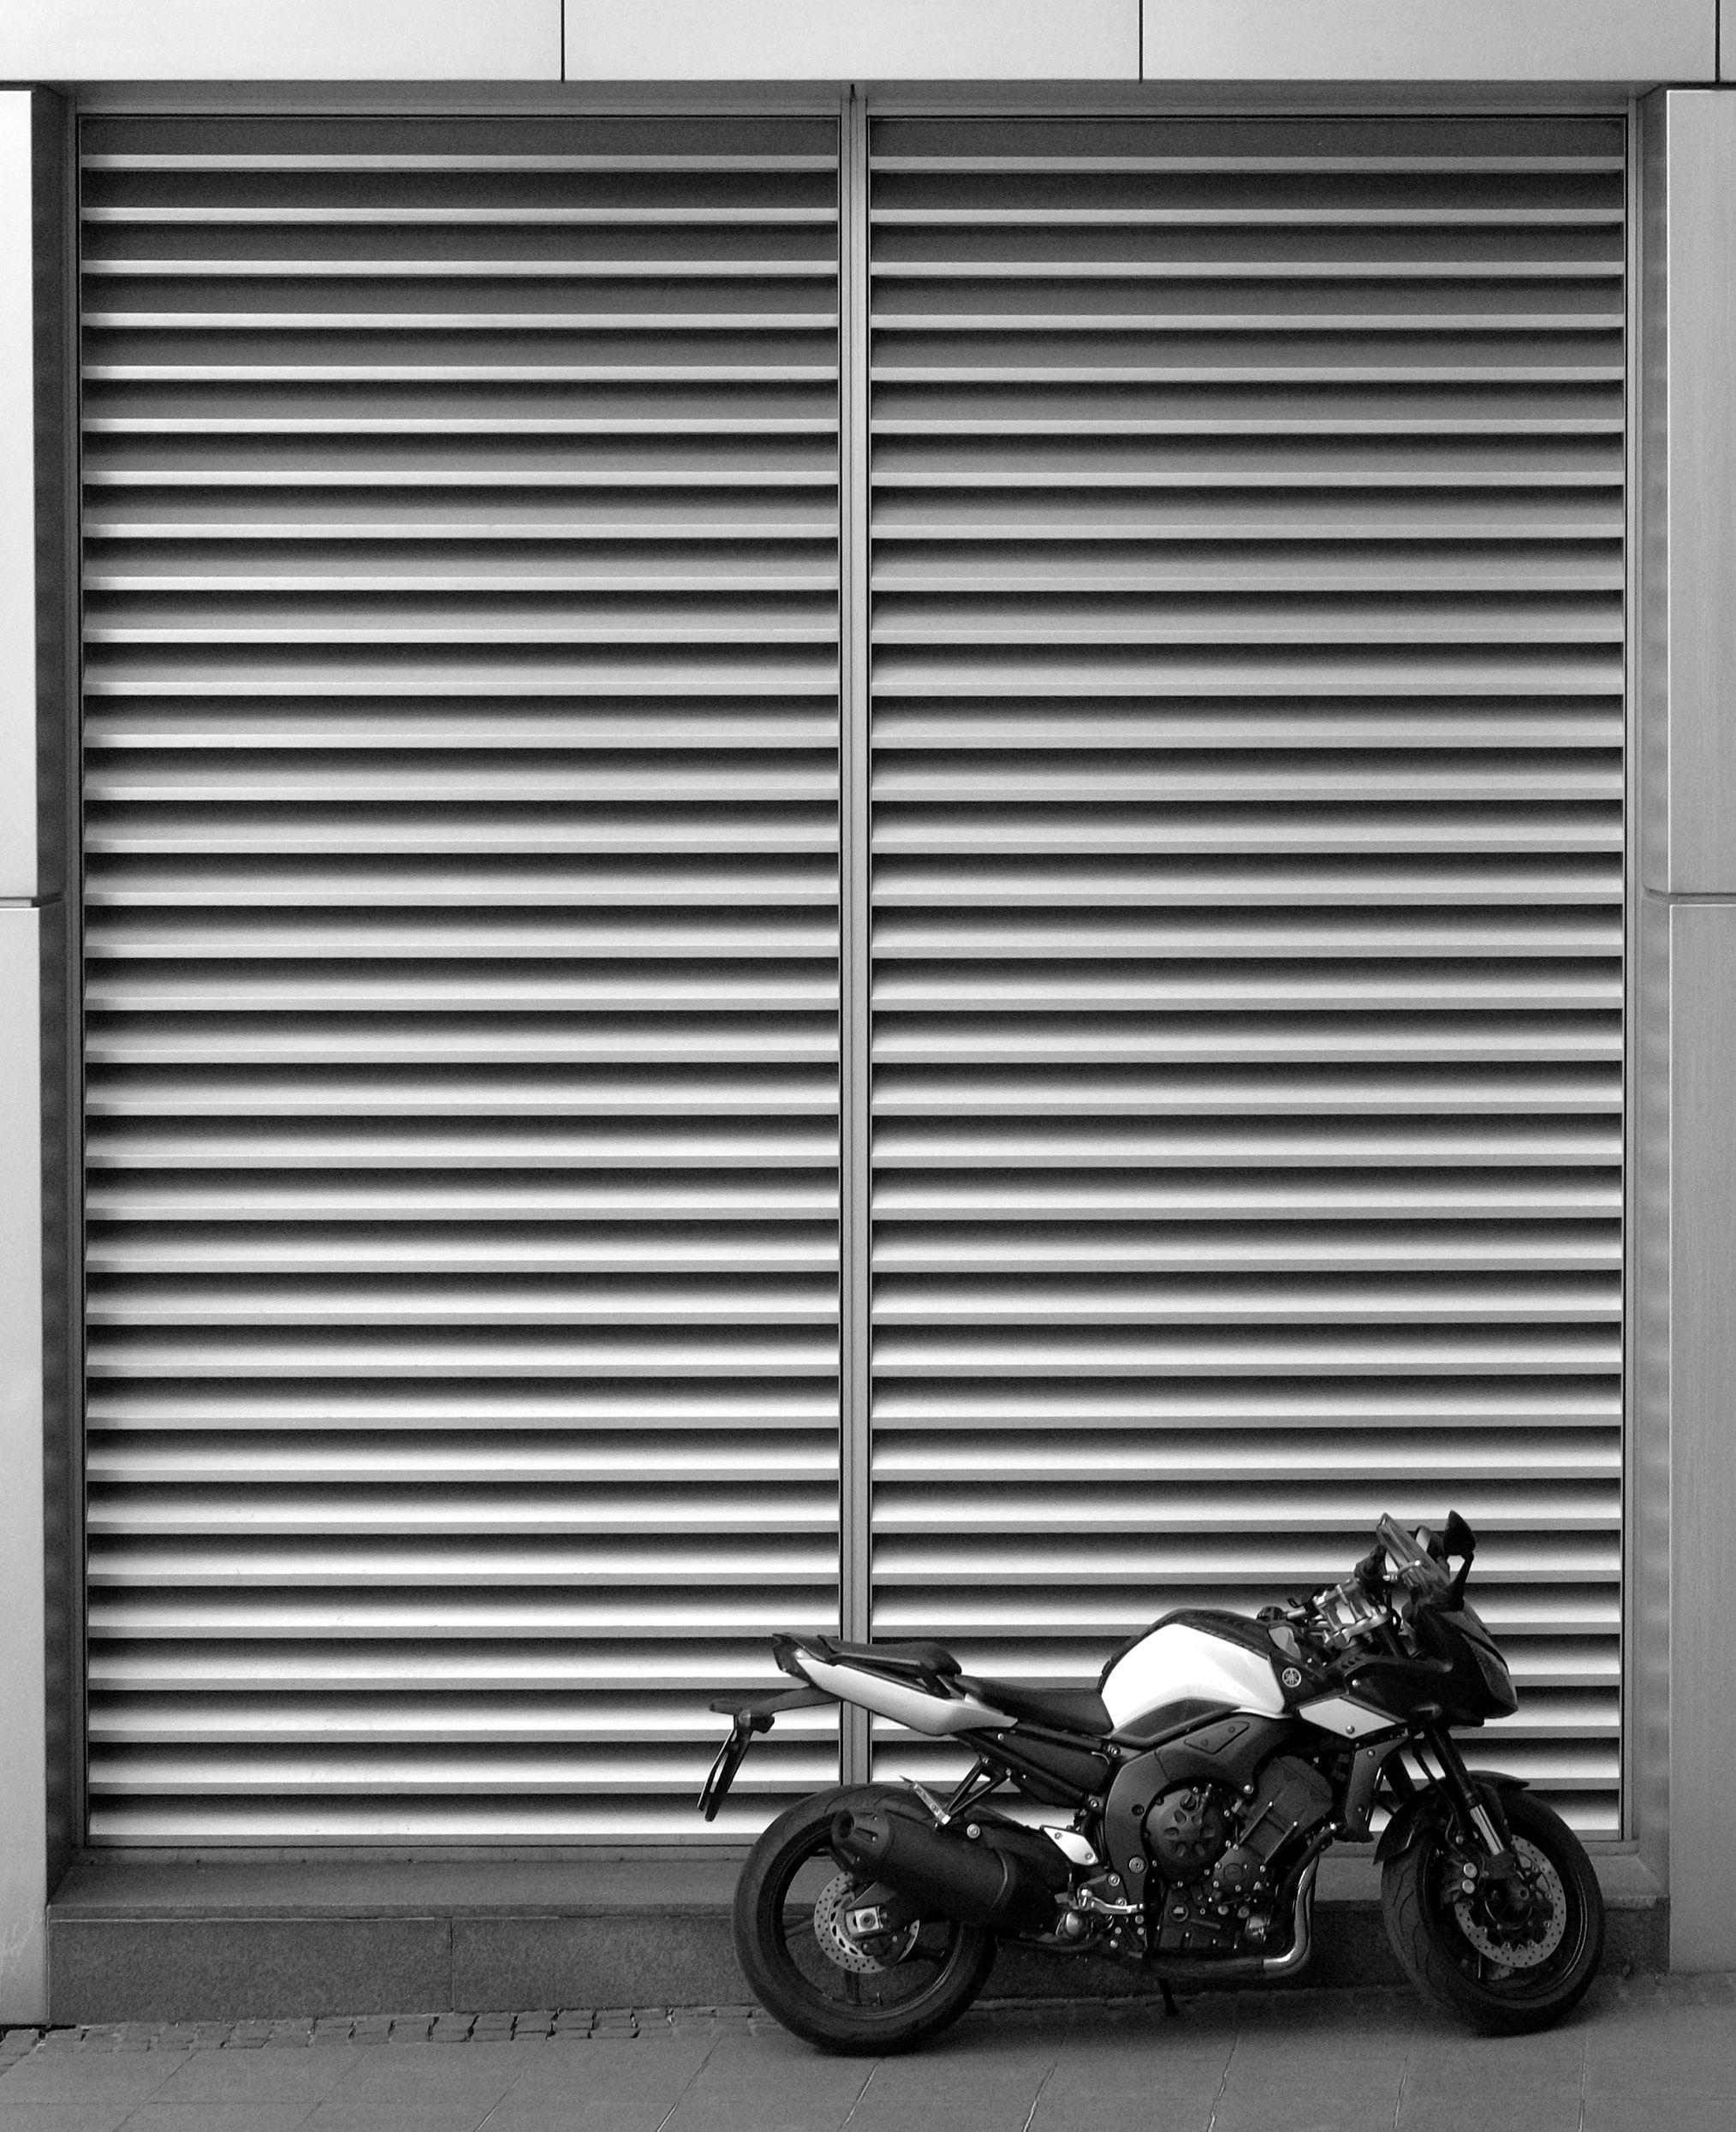 backbone motorcycle parked beside roll-up door